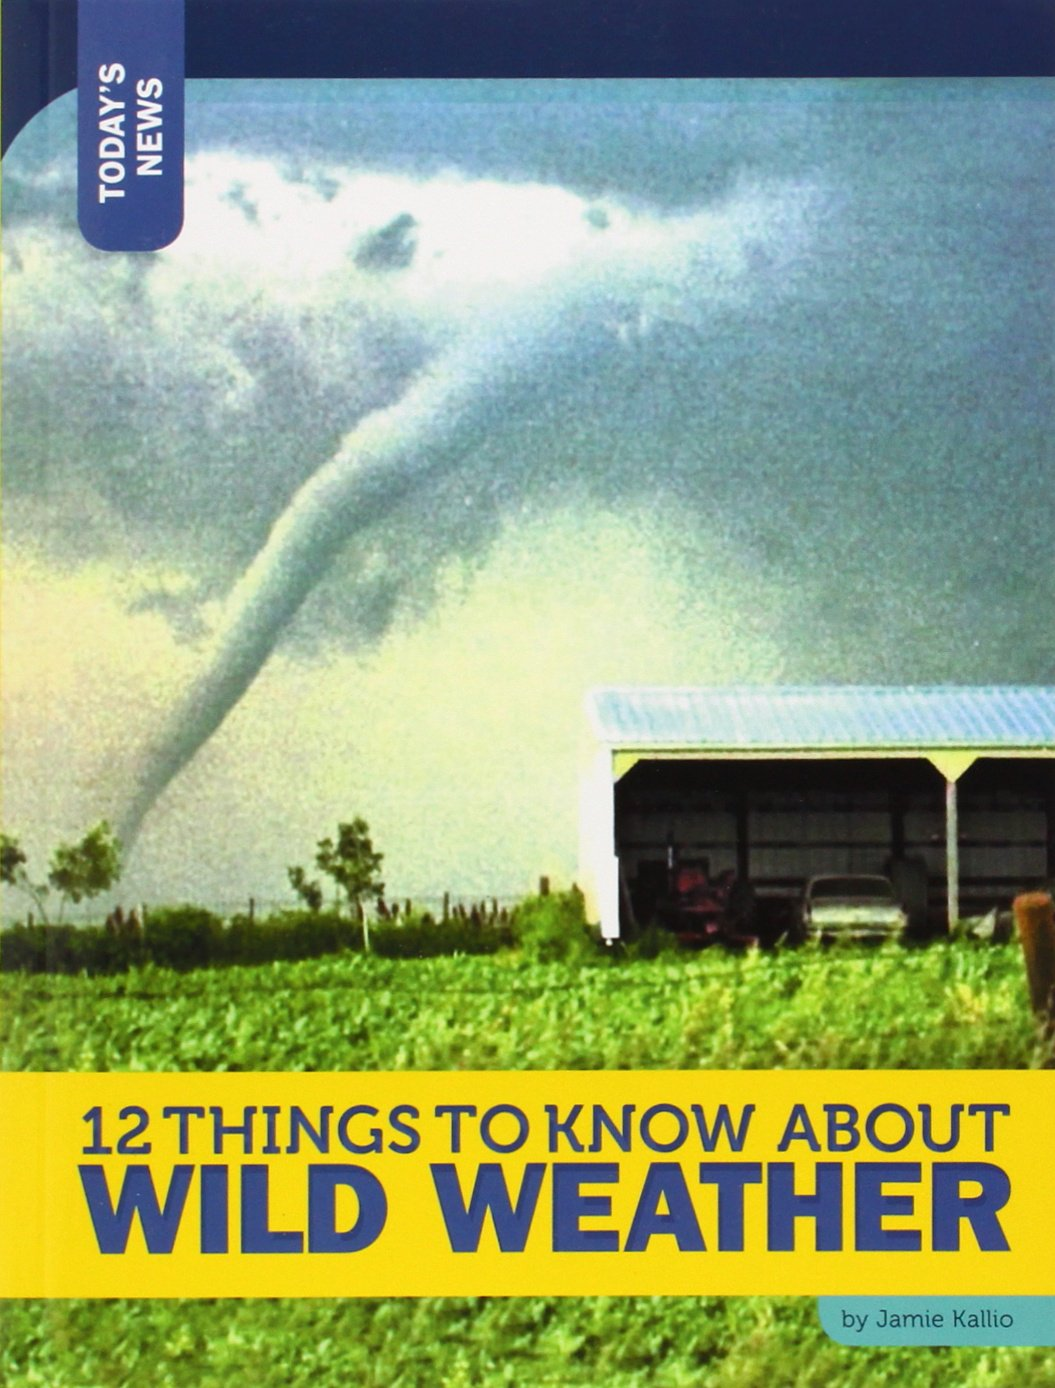 12 Things to Know about Wild Weather (Today's News)